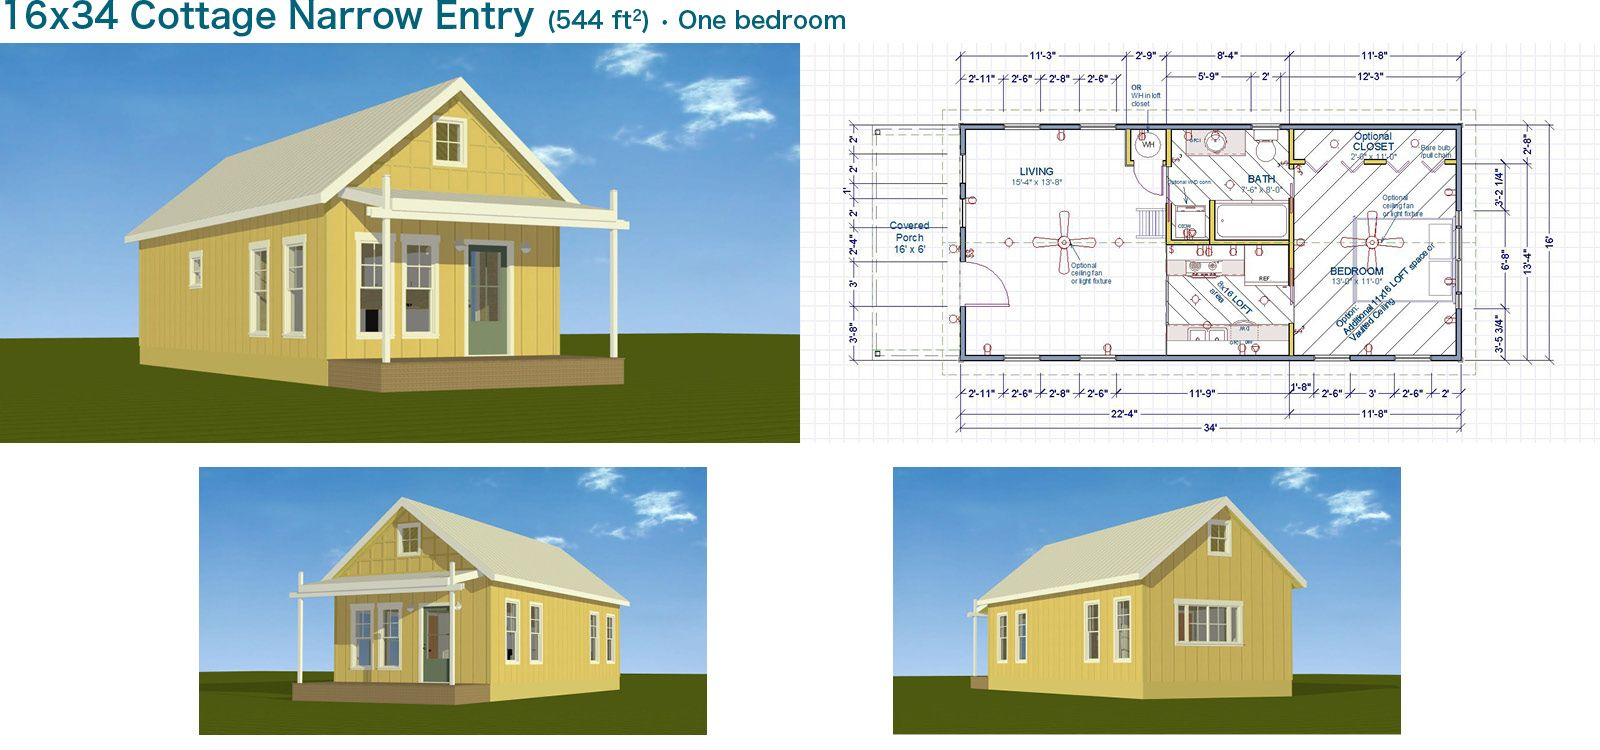 Tiny Home Designs: 16x34 Cottage Narrow Entry